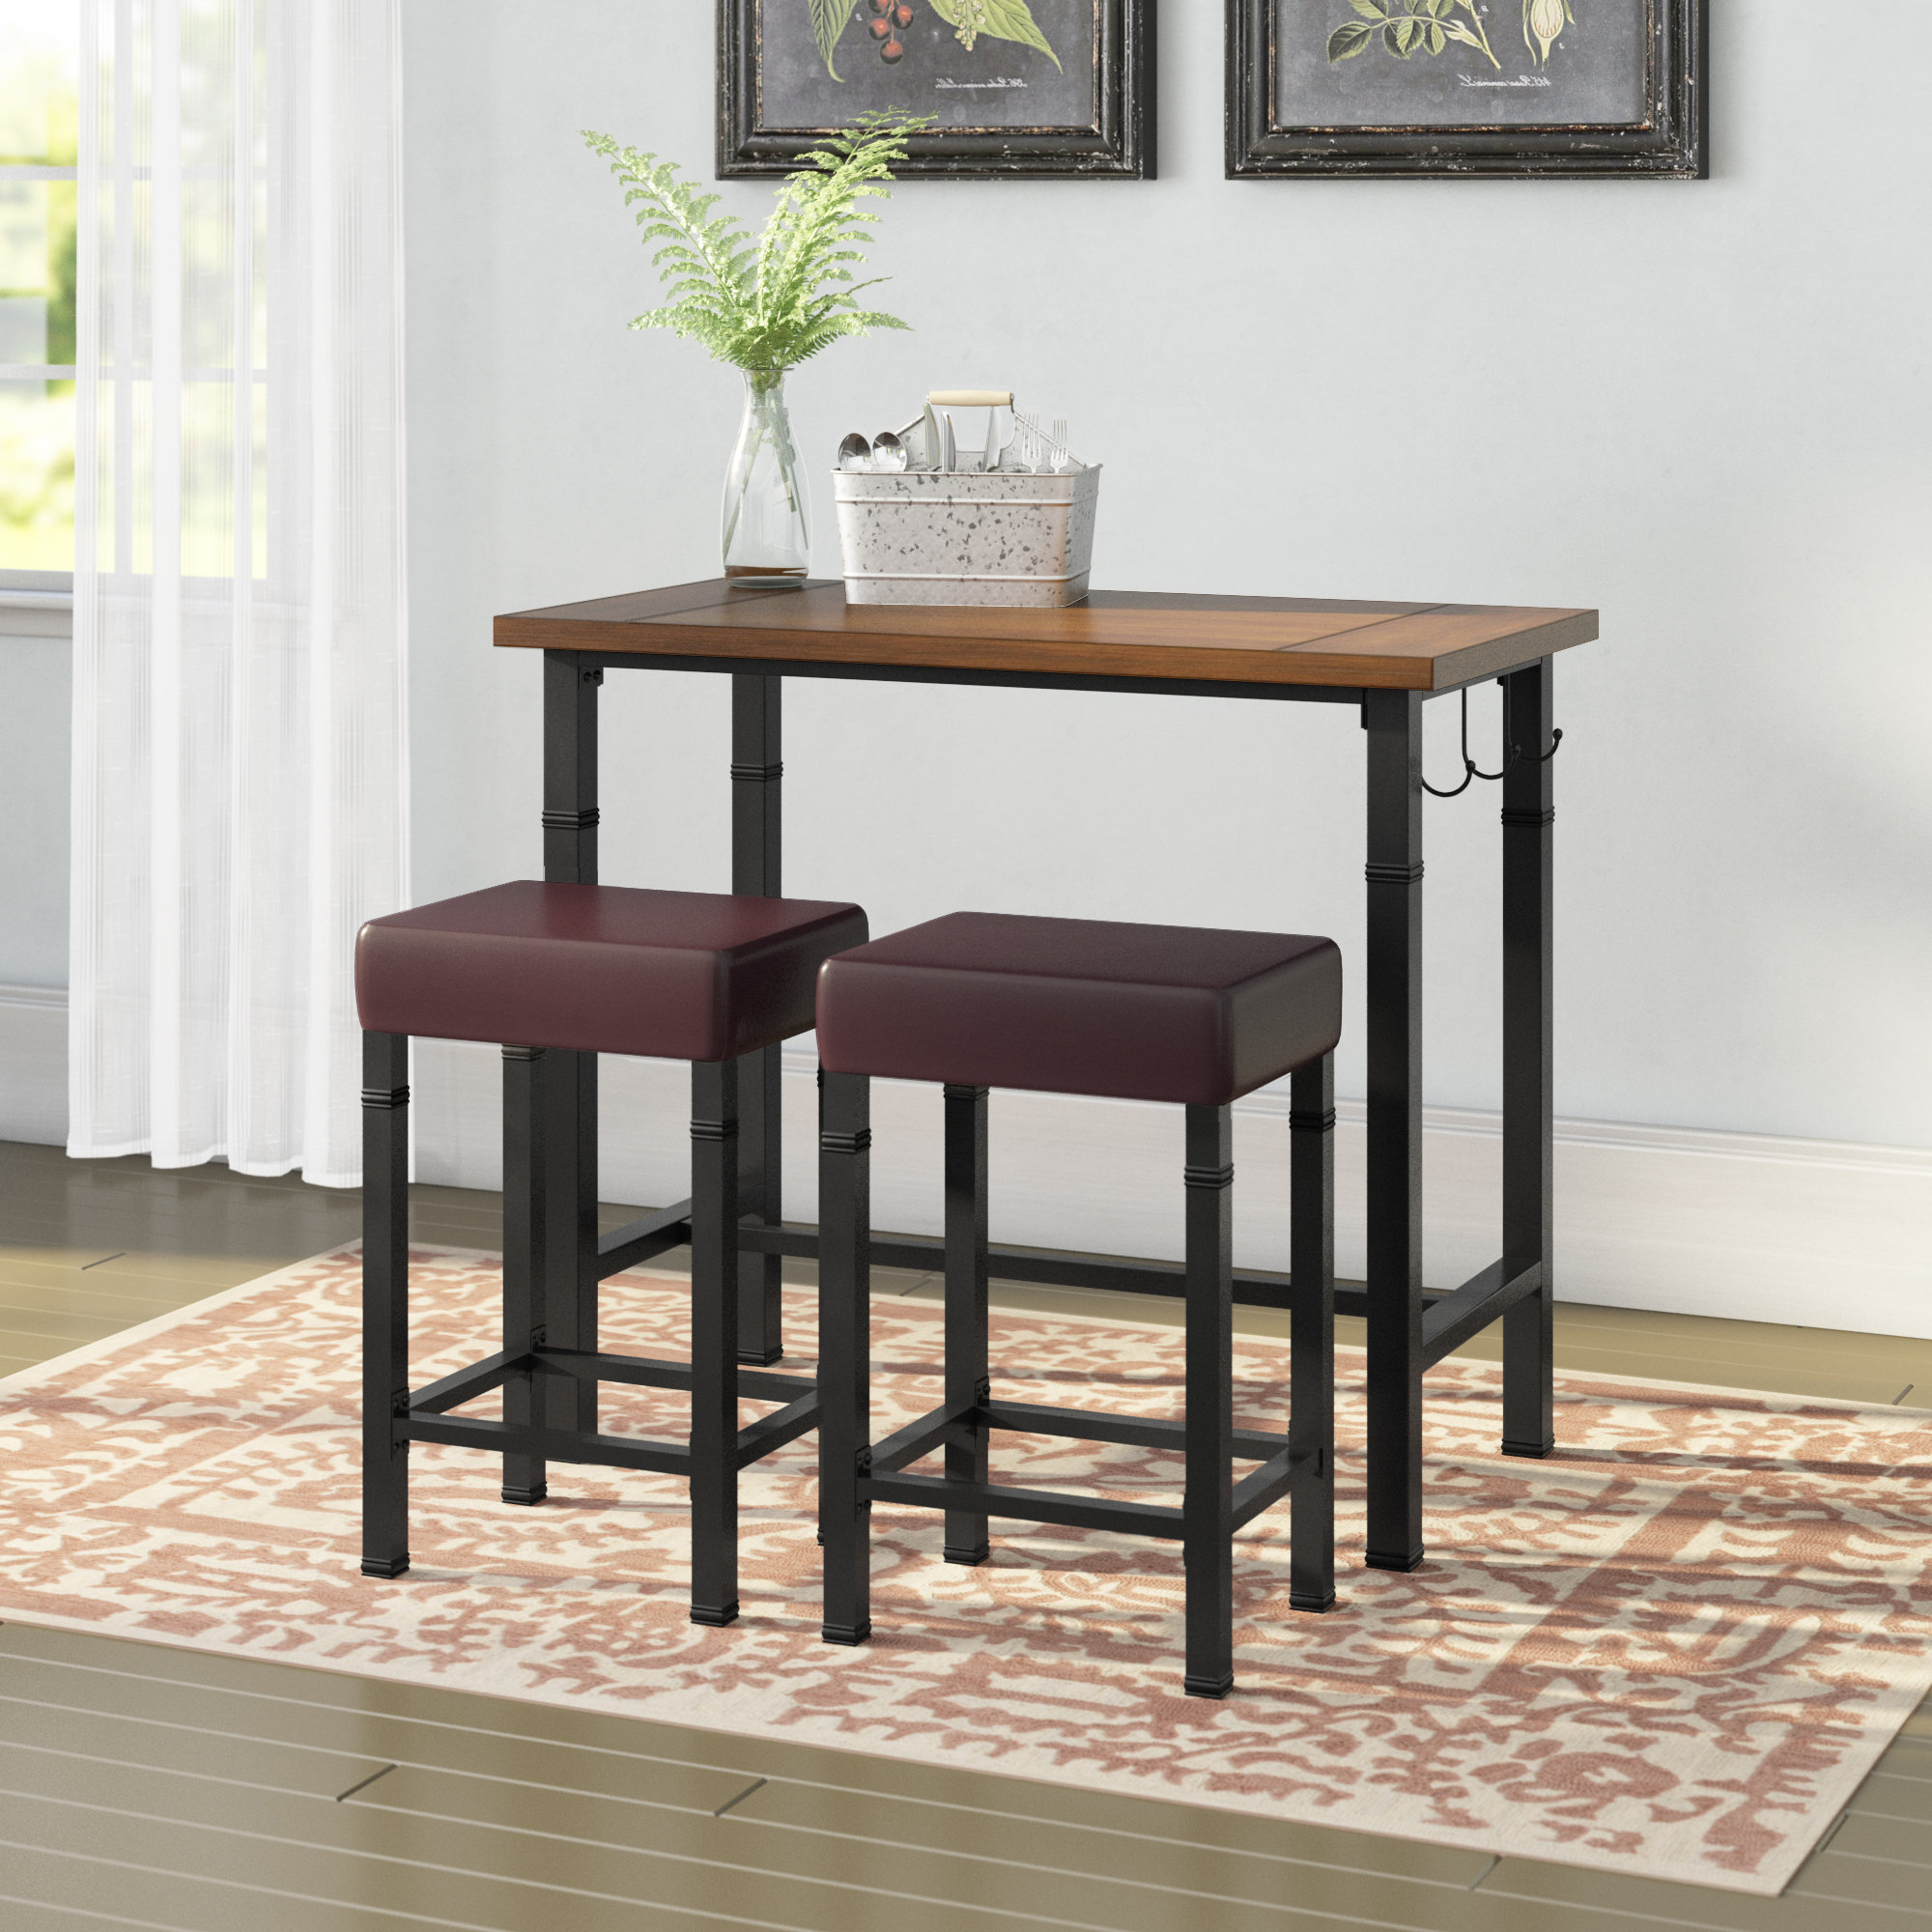 Springfield 3 Piece Dining Sets With Well Known Laurel Foundry Modern Farmhouse Sevigny 3 Piece Pub Table Set (View 6 of 25)